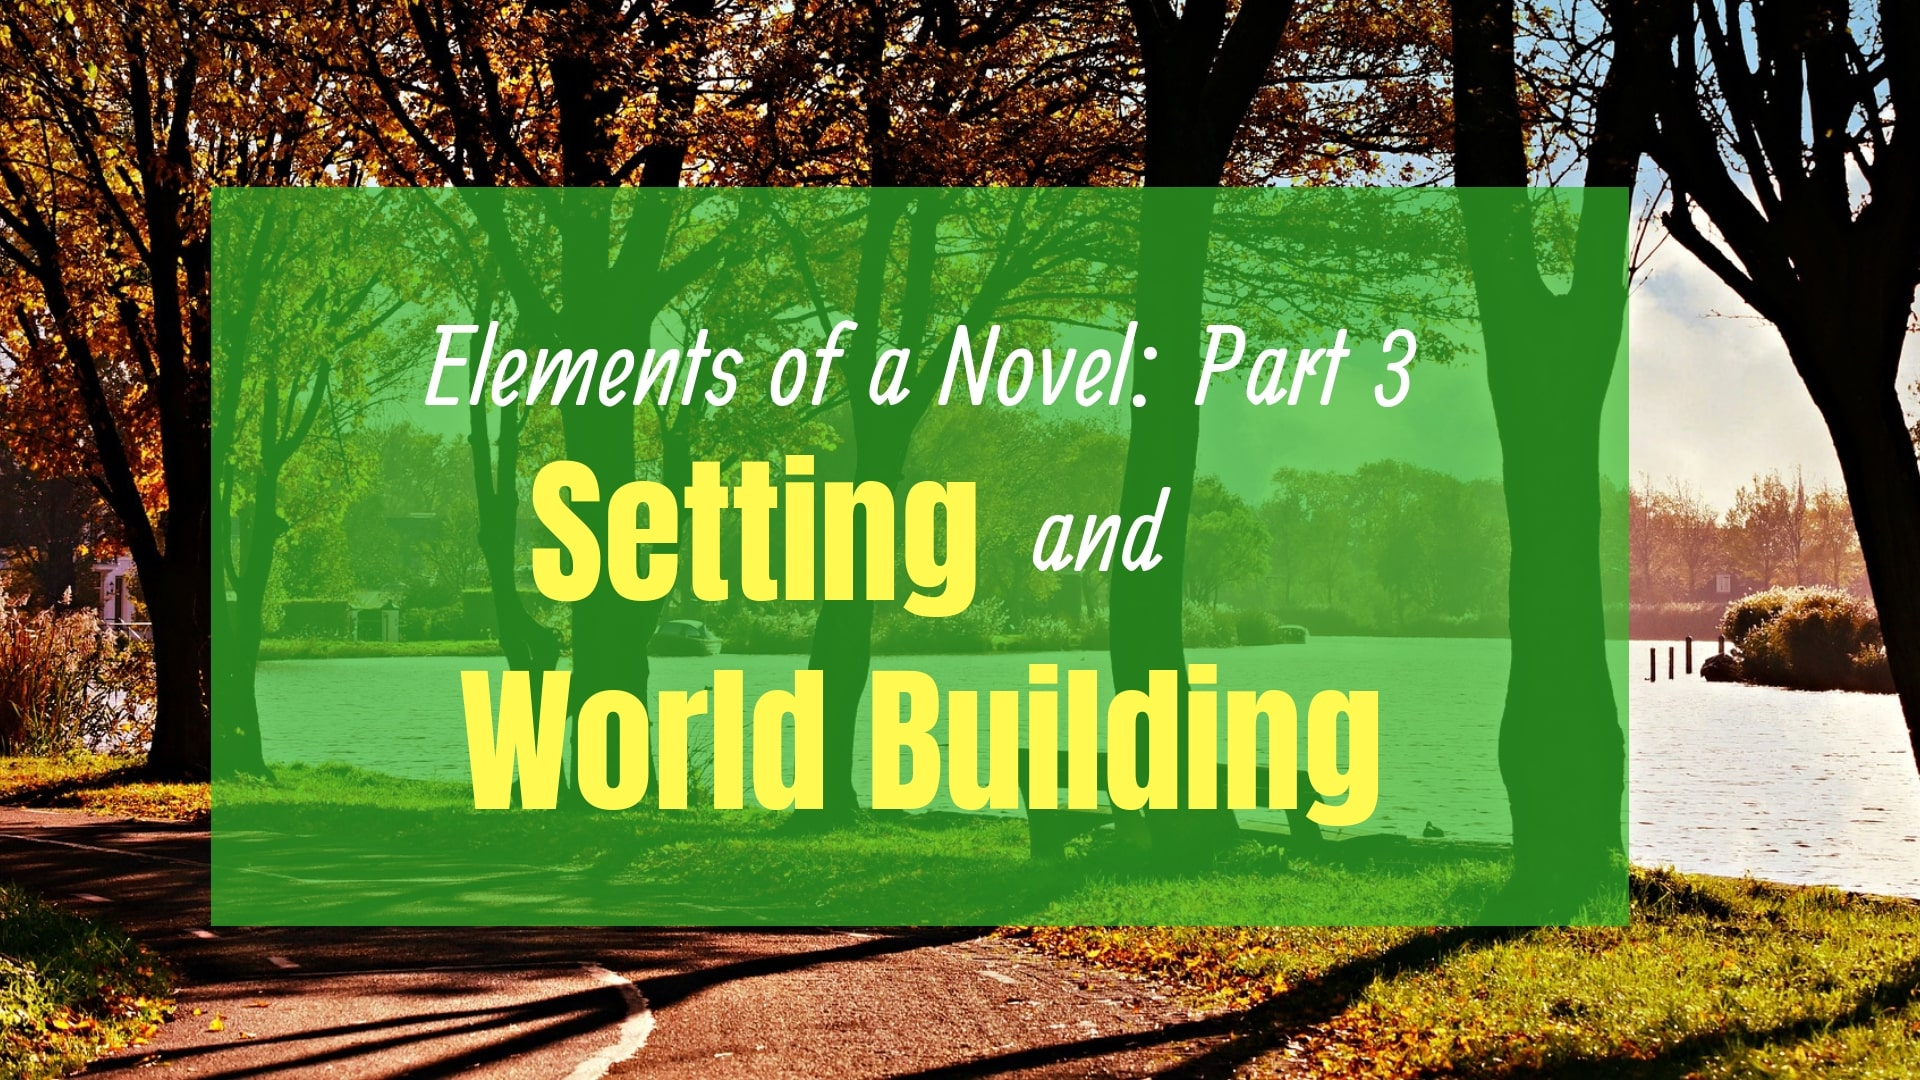 Elements of a Novel: Setting and world building